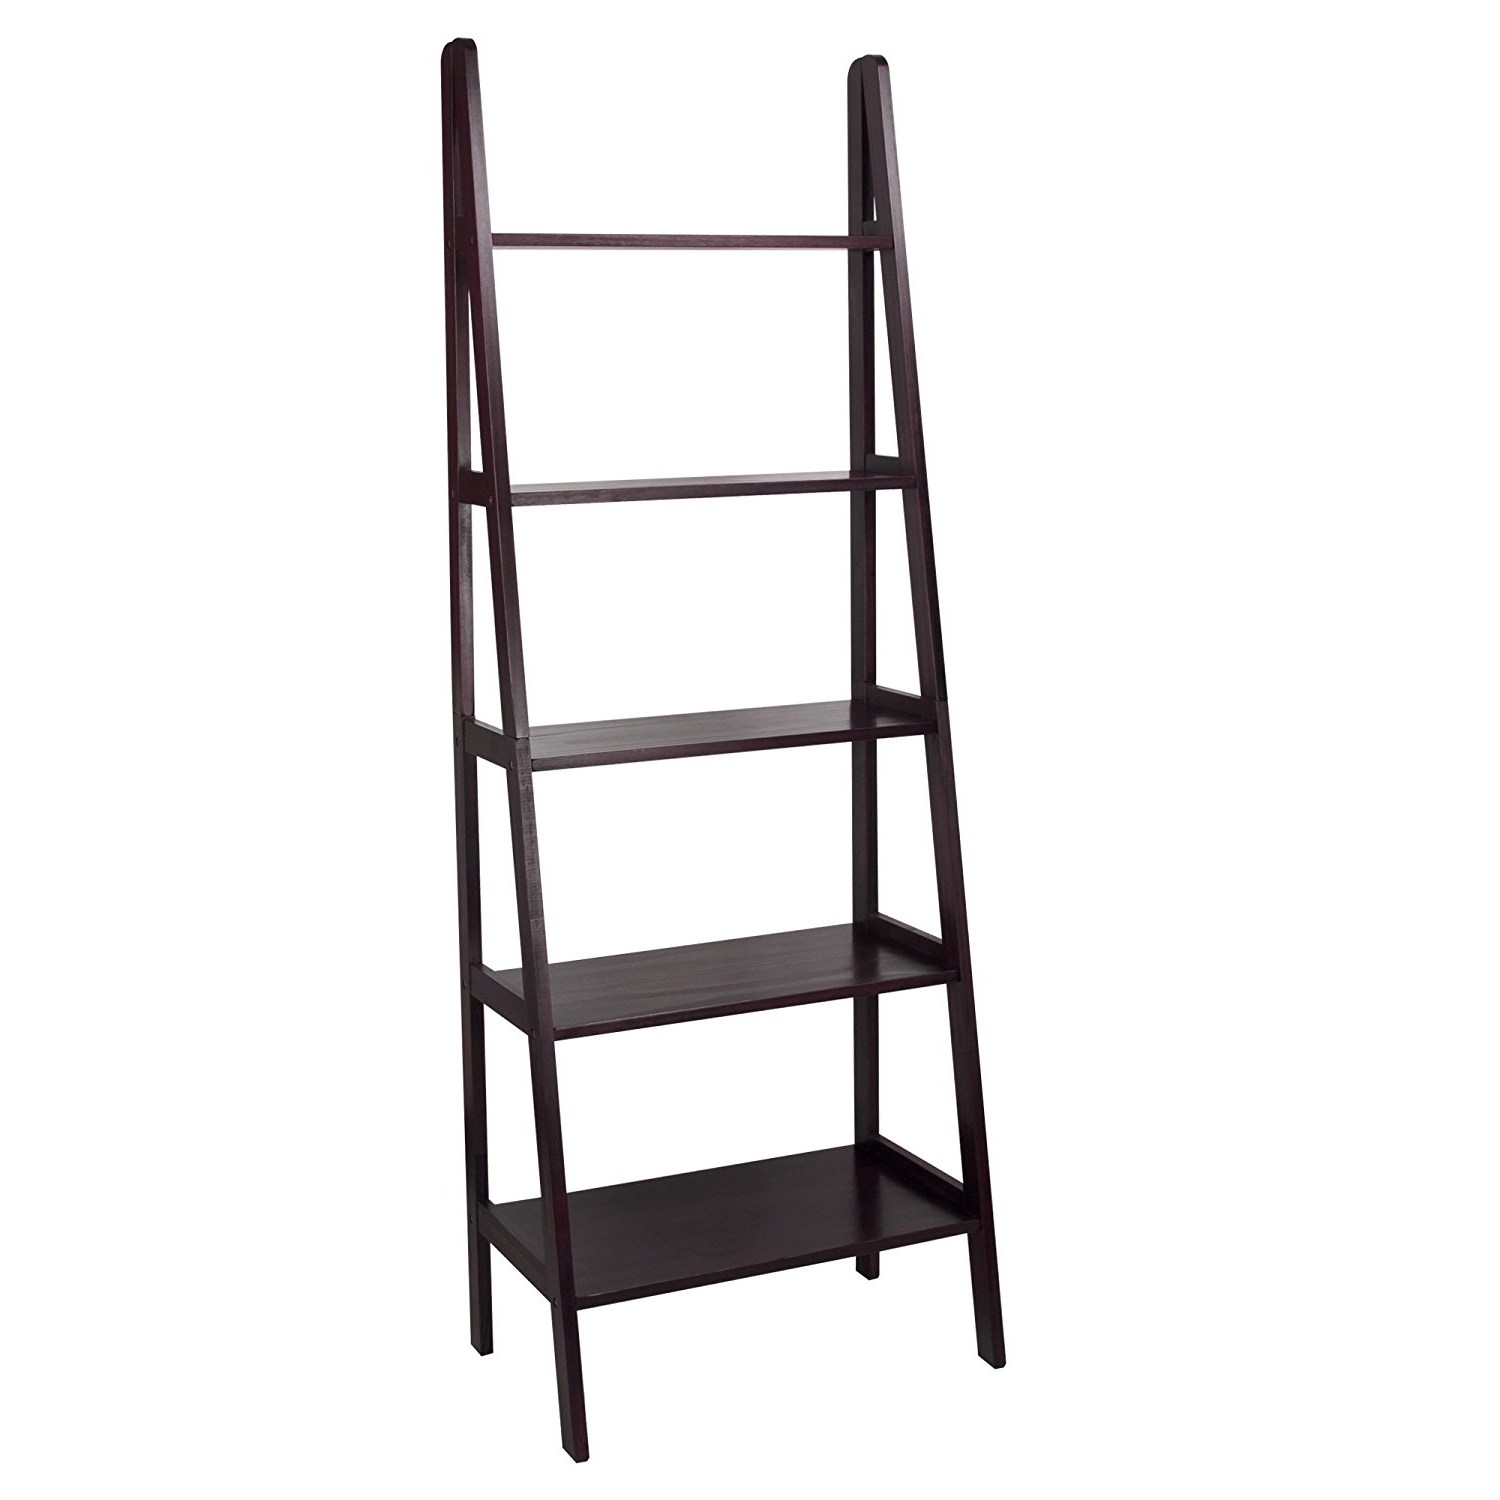 2018 White Ladder Bookcases Intended For Amazon: Casual Home 176 53 5 Shelf Ladder Bookcase, Espresso (View 14 of 15)